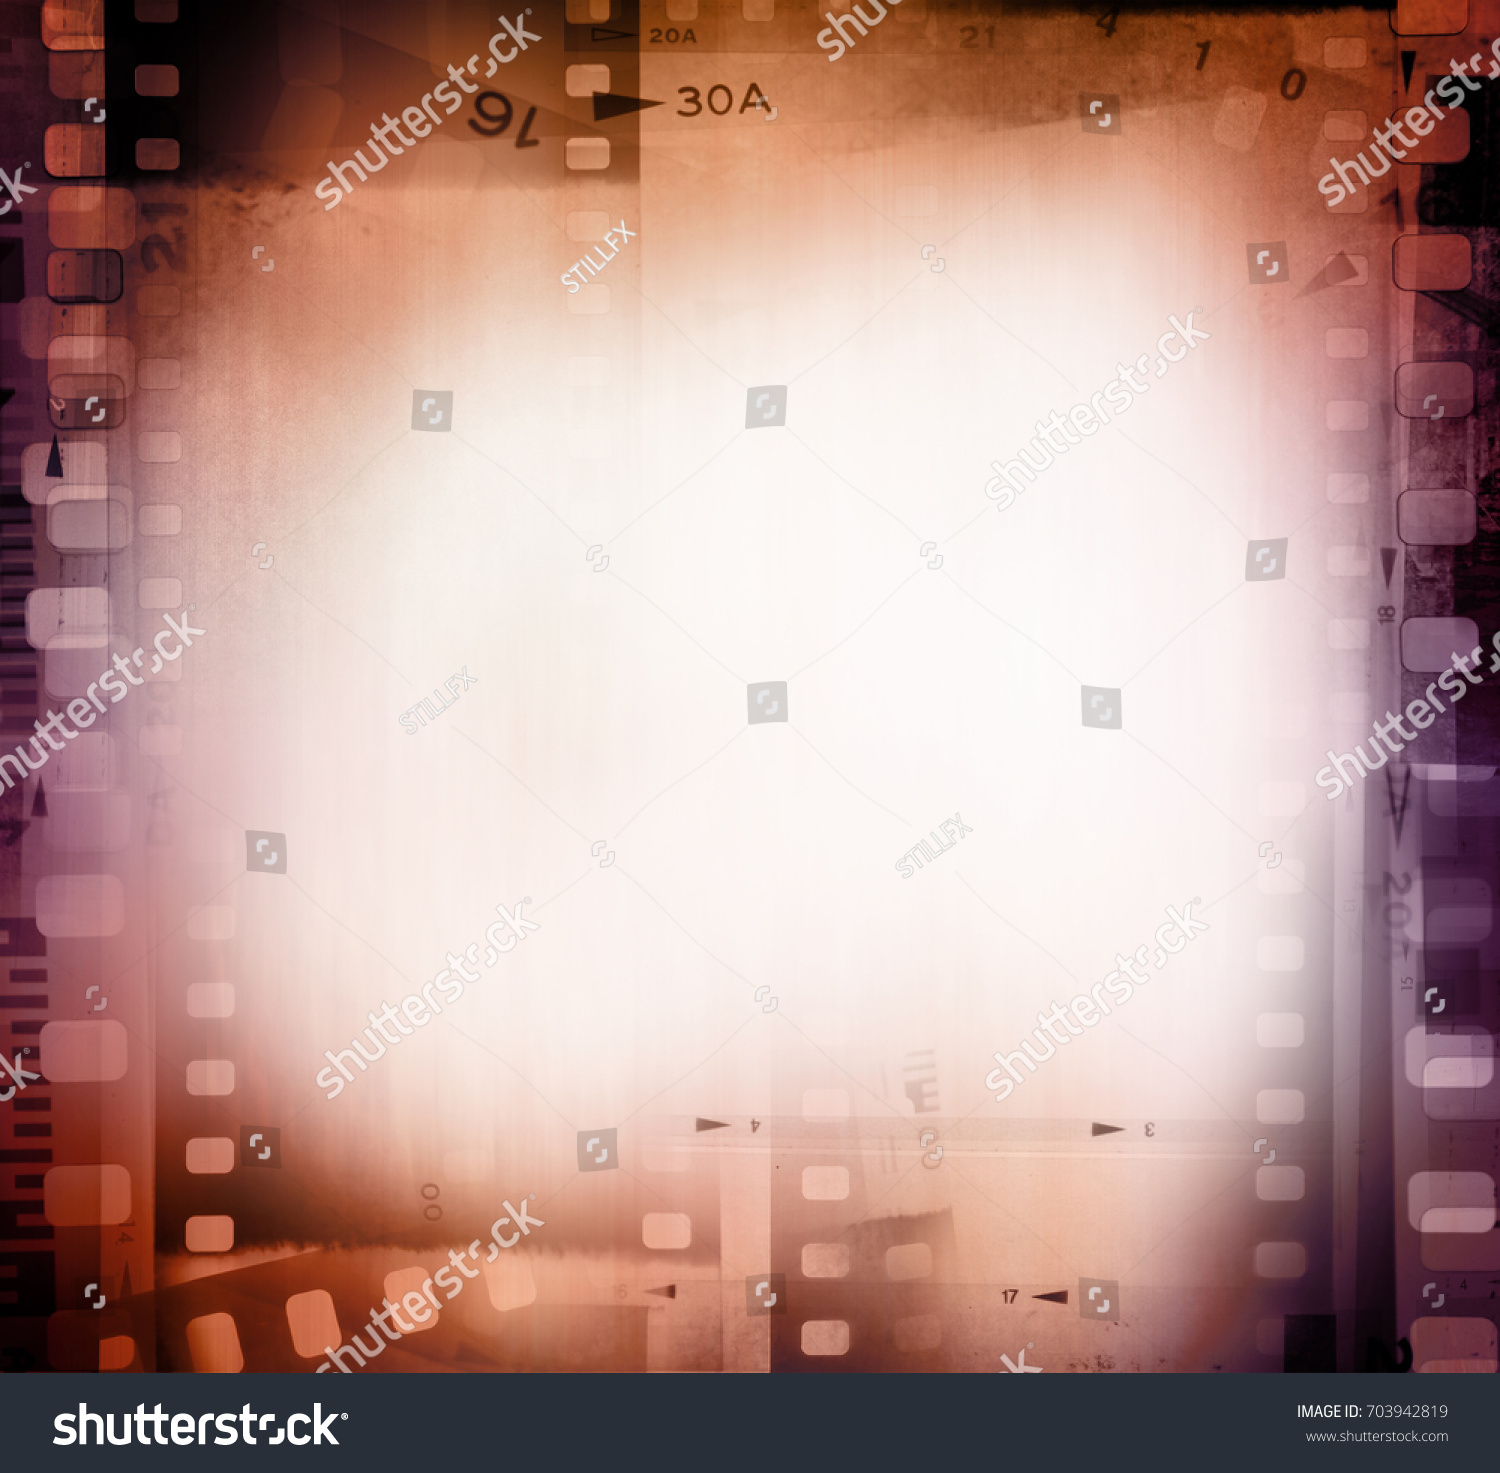 Film Negative Frames Background Stock Photo 703942819 ...